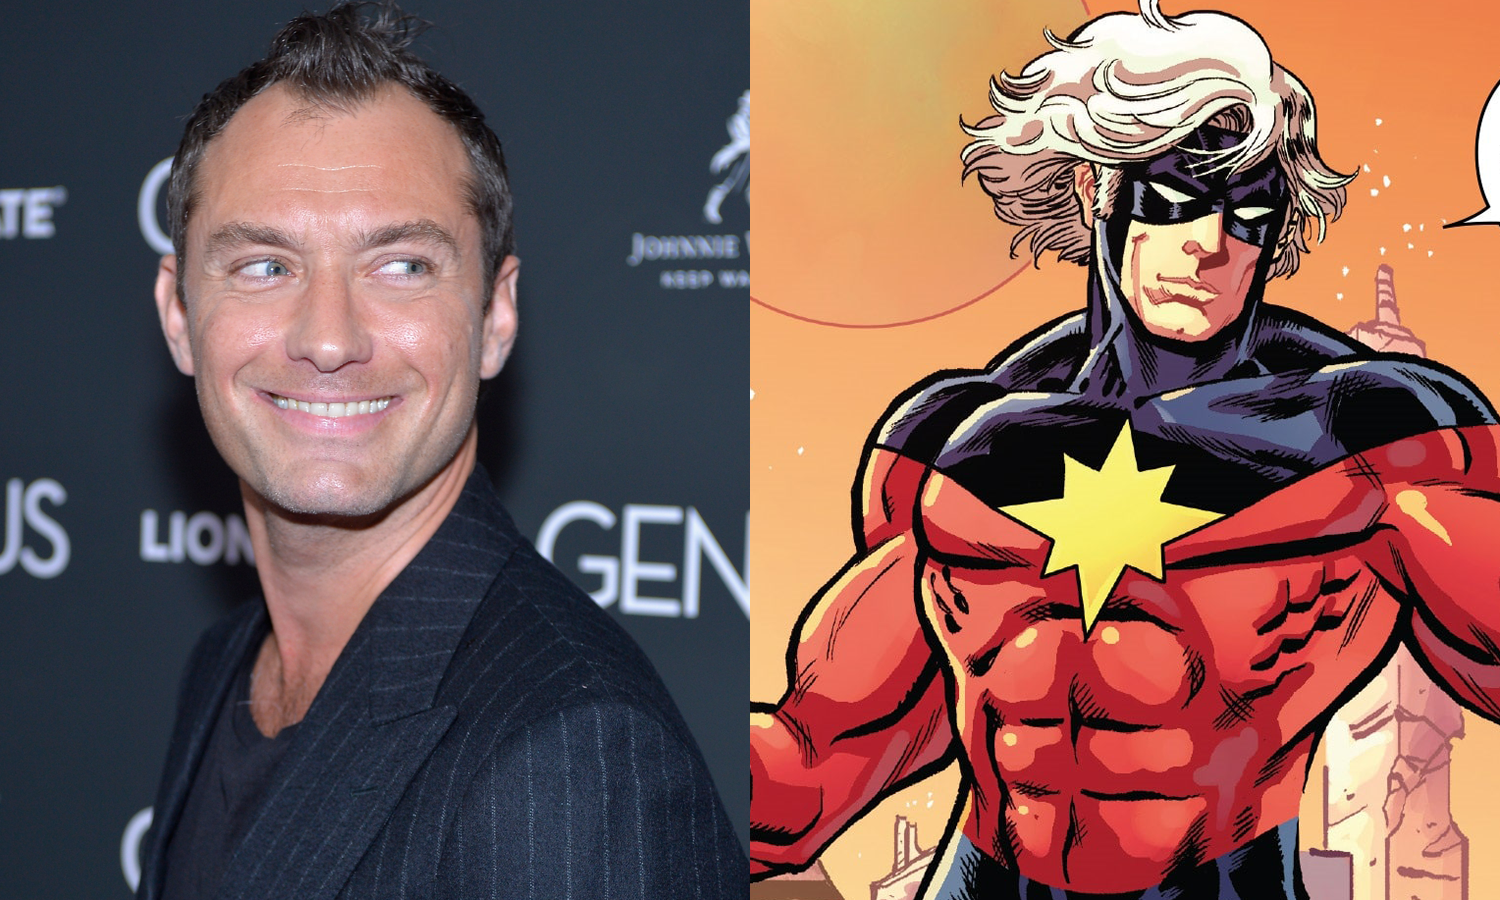 Jude Law Captain Marvel Mar-Vell